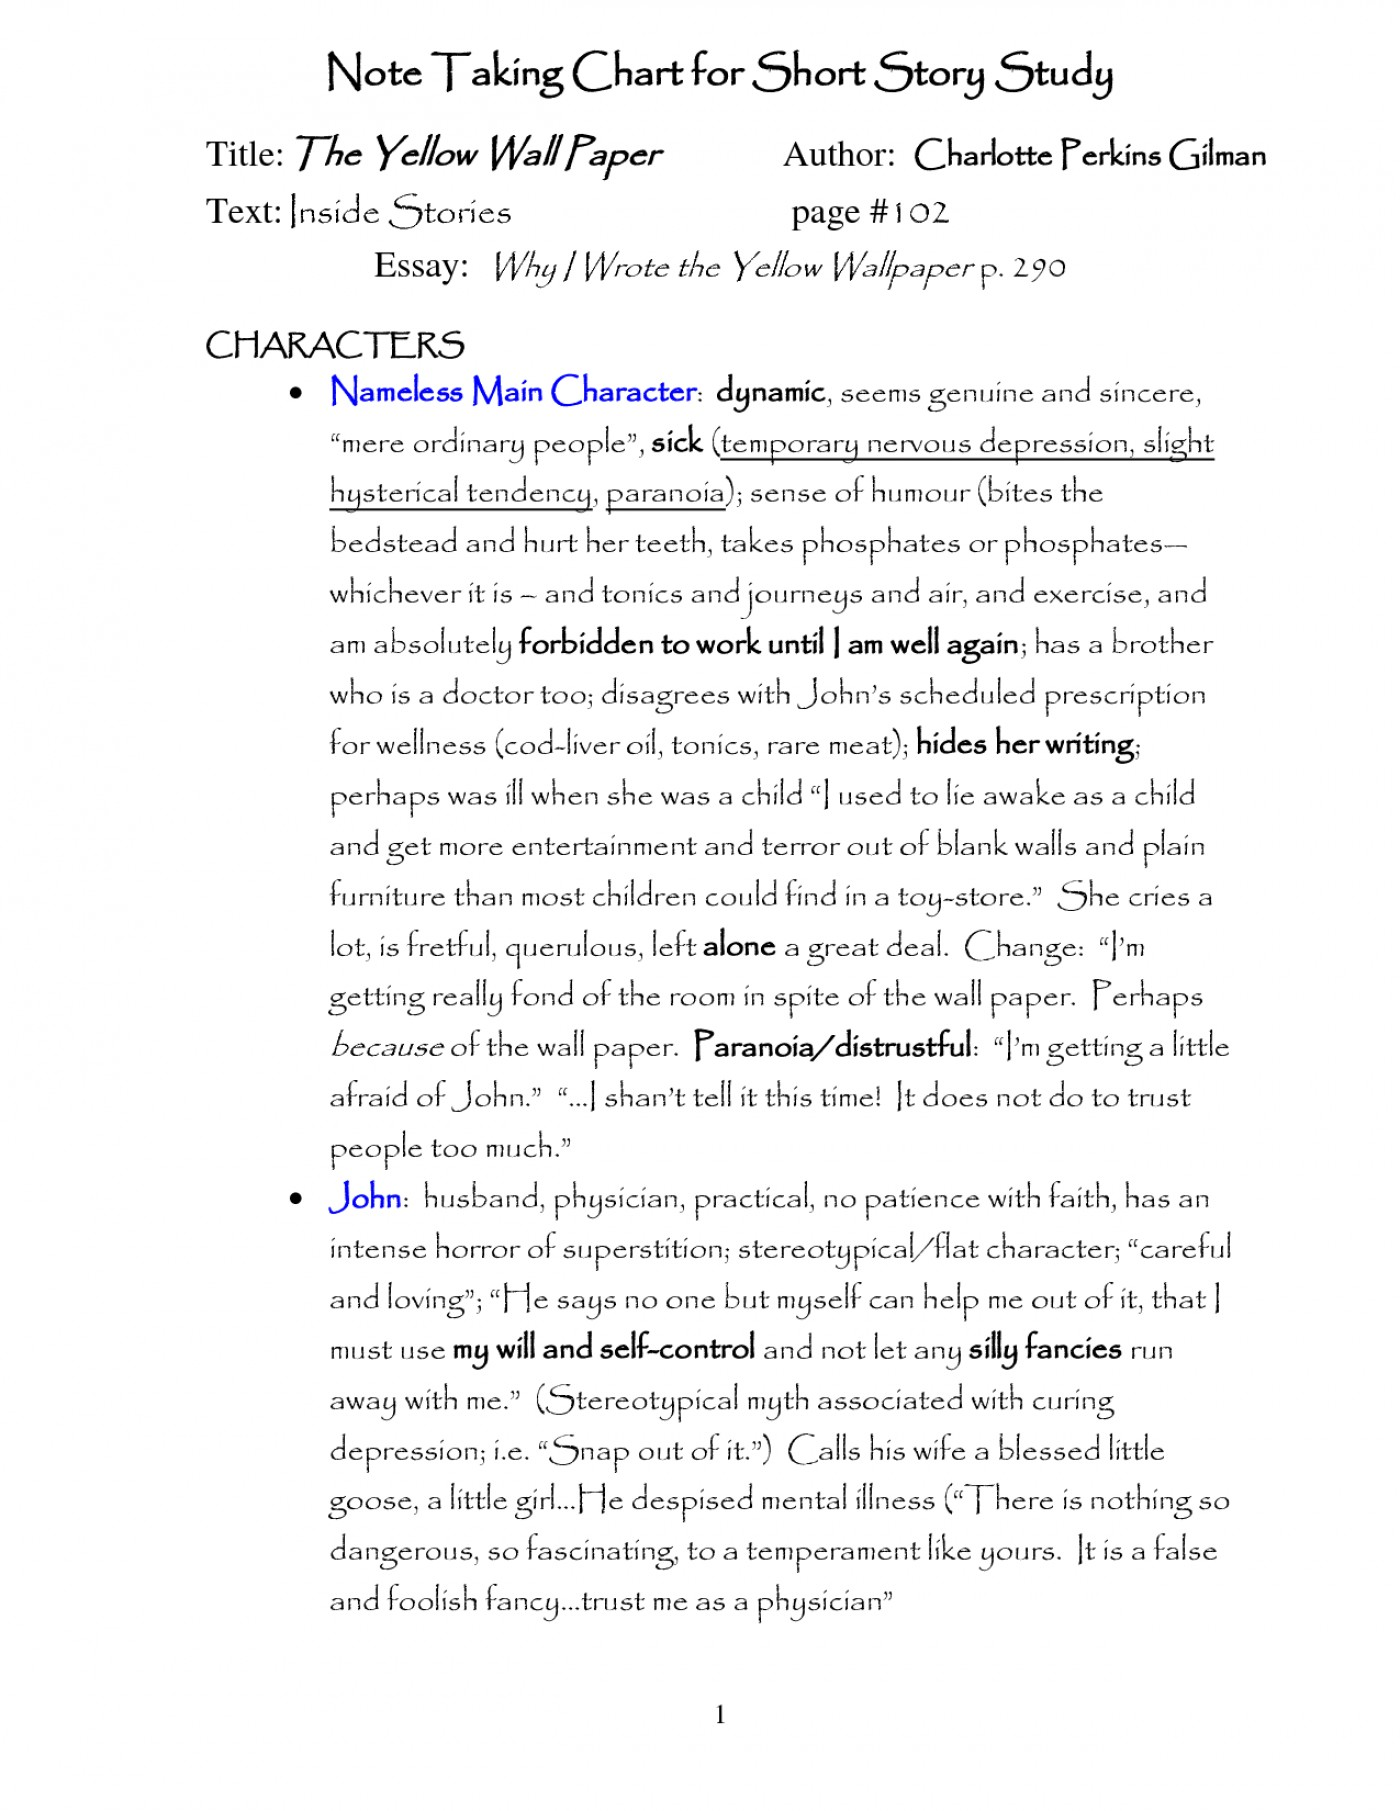 003 The Yellow Wallpaper Essay Qbyjop Top Feminism Questions Conclusion 1400